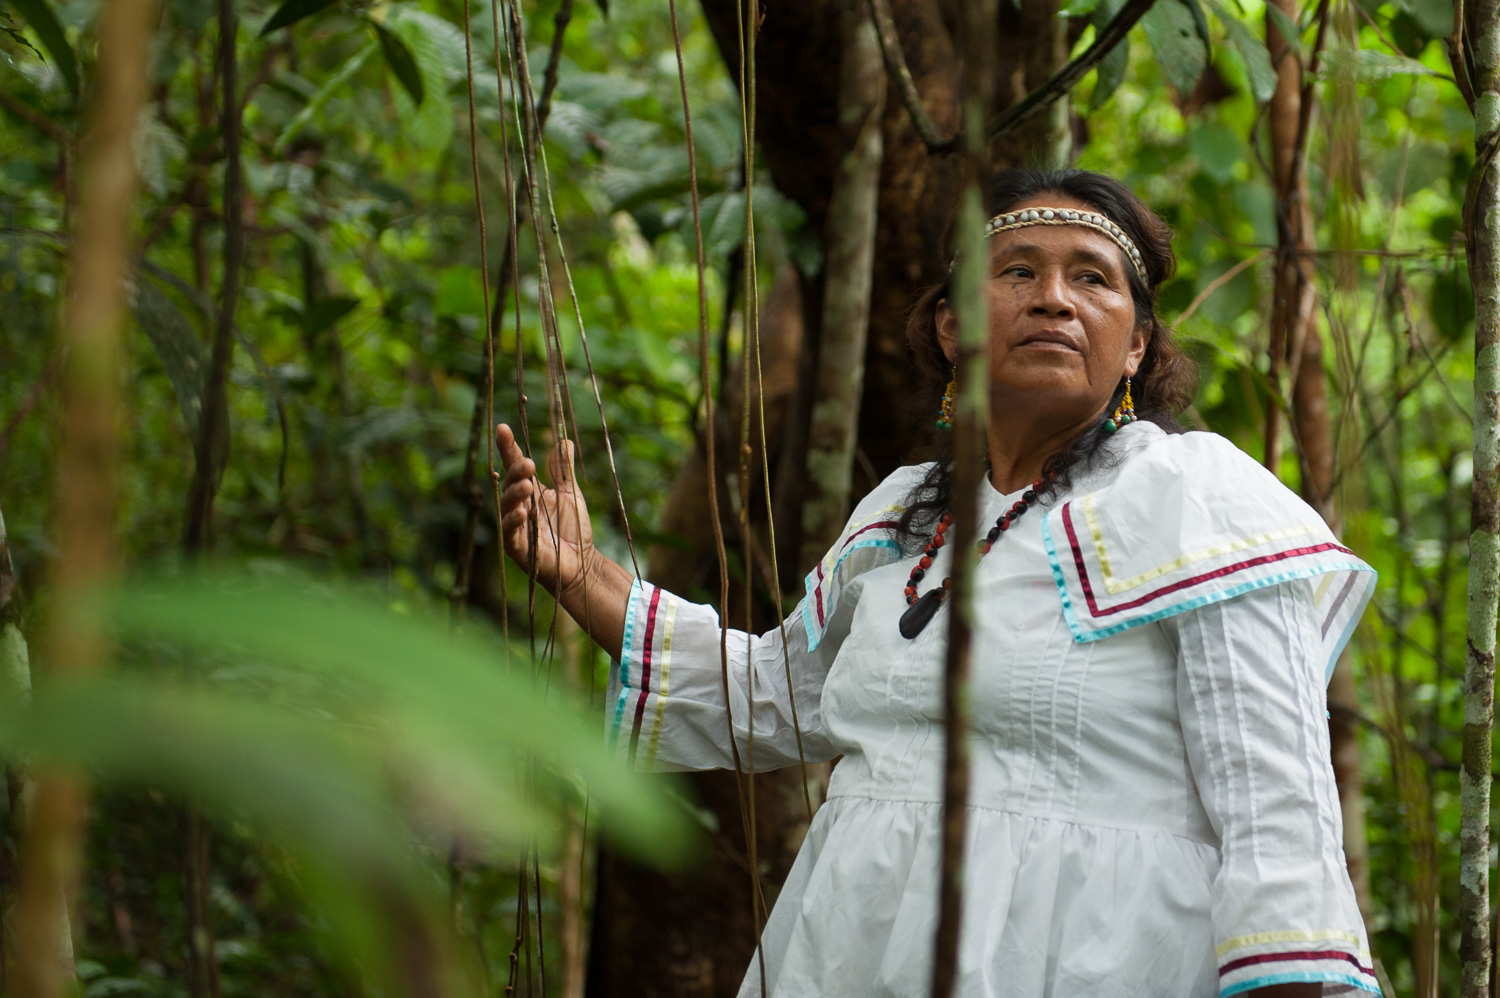 Ema Tapullima, the community leader of the Kukama Kukamila people of Puerto Prado, Brazil, stands amidst the Amazonian forest that she works to protect.After witnessing the destruction of her neighbors' forests along the Marañon River, she reached out to a local NGO to protect the forest as a private conservation area -- the first of its kind in Peru.